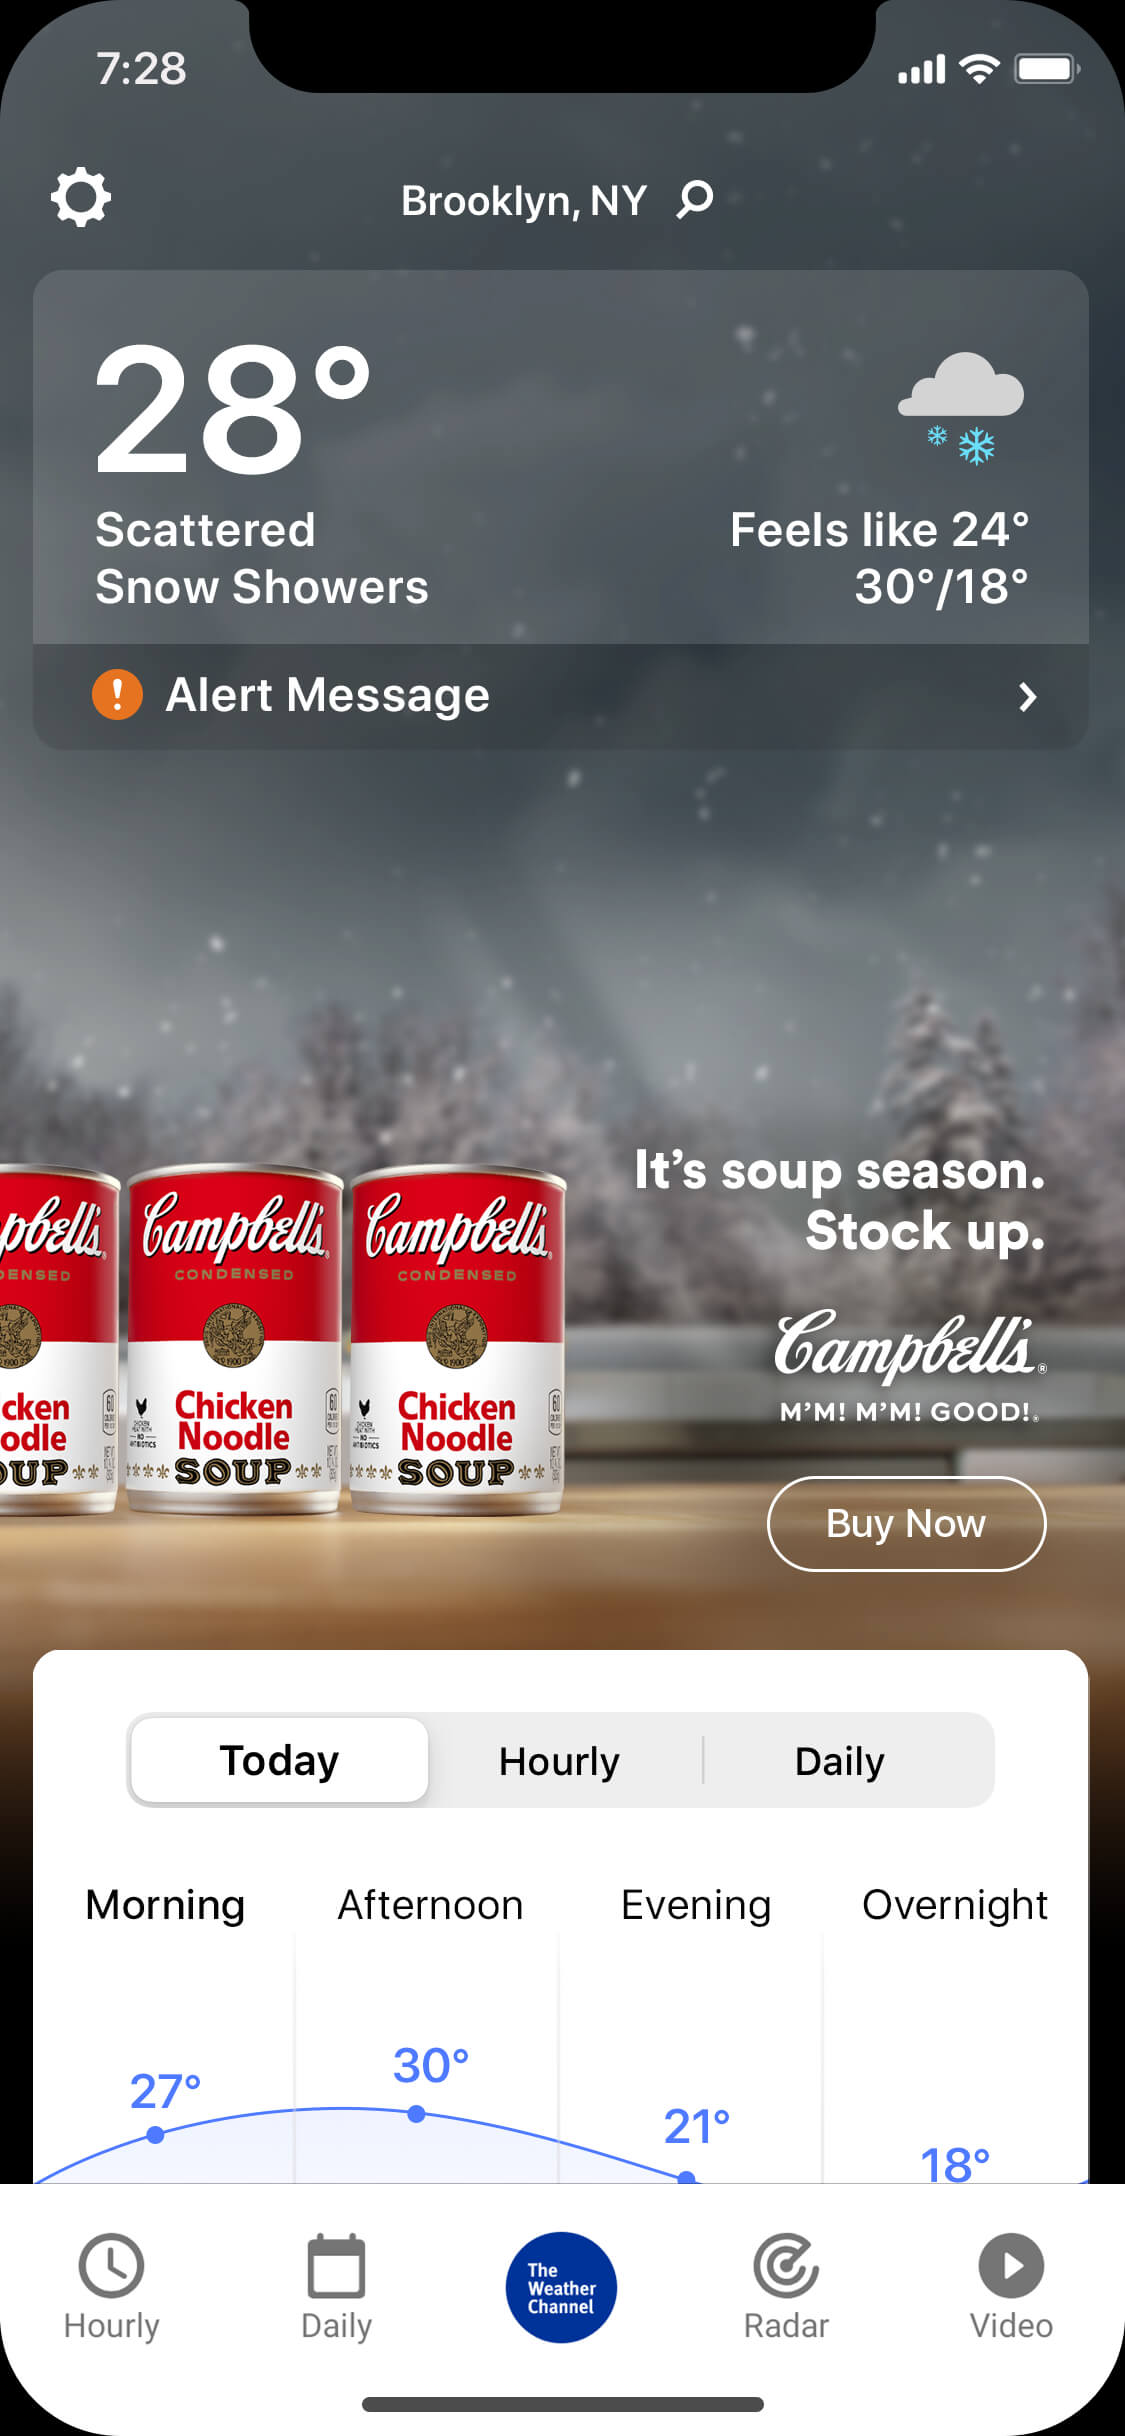 campbells-stockup_wintry-day